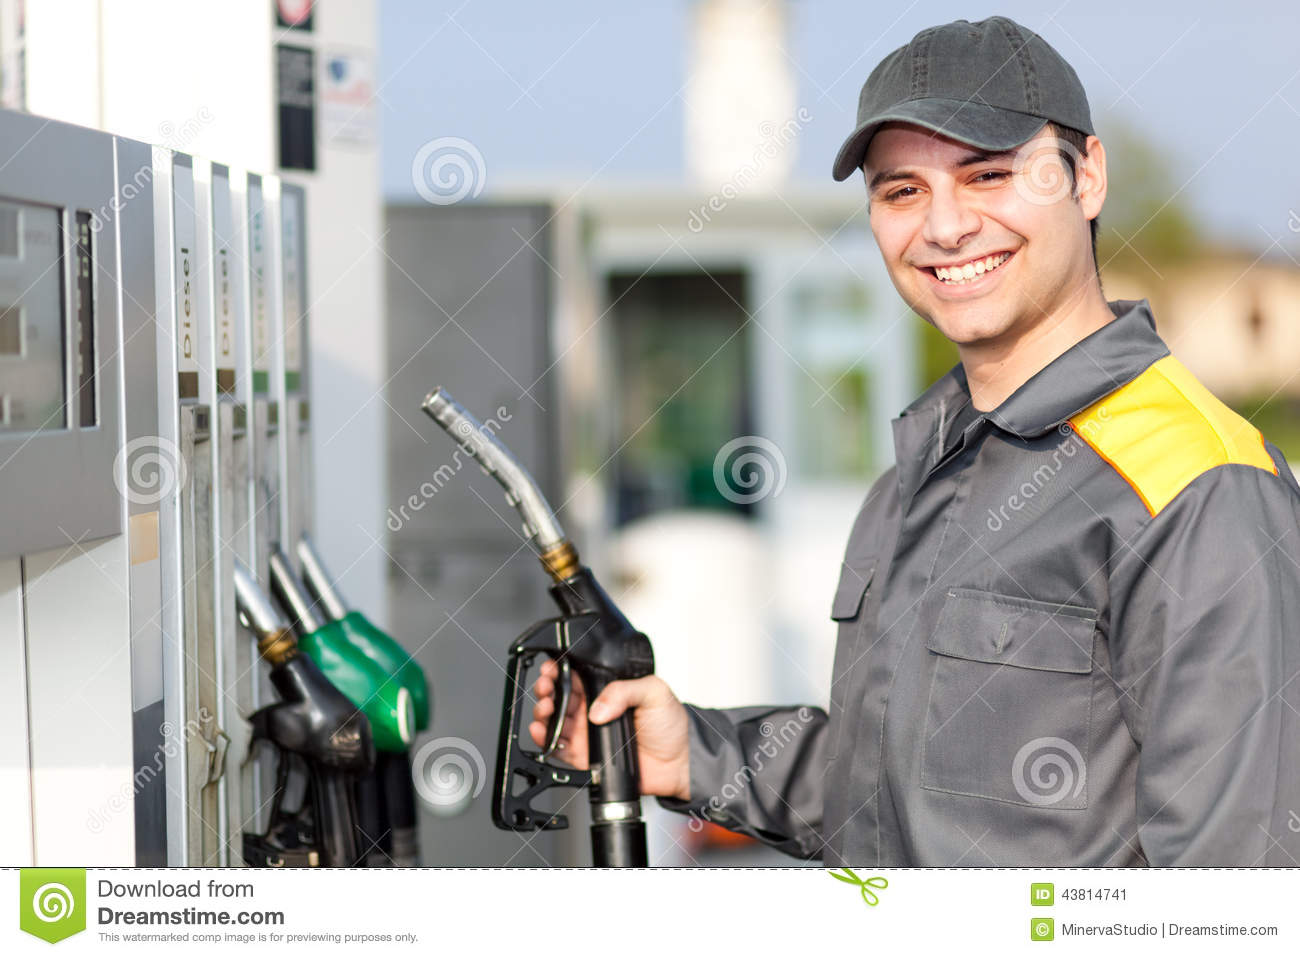 Smiling Gas Station Worker At Work Stock Photo - Image: 43814741